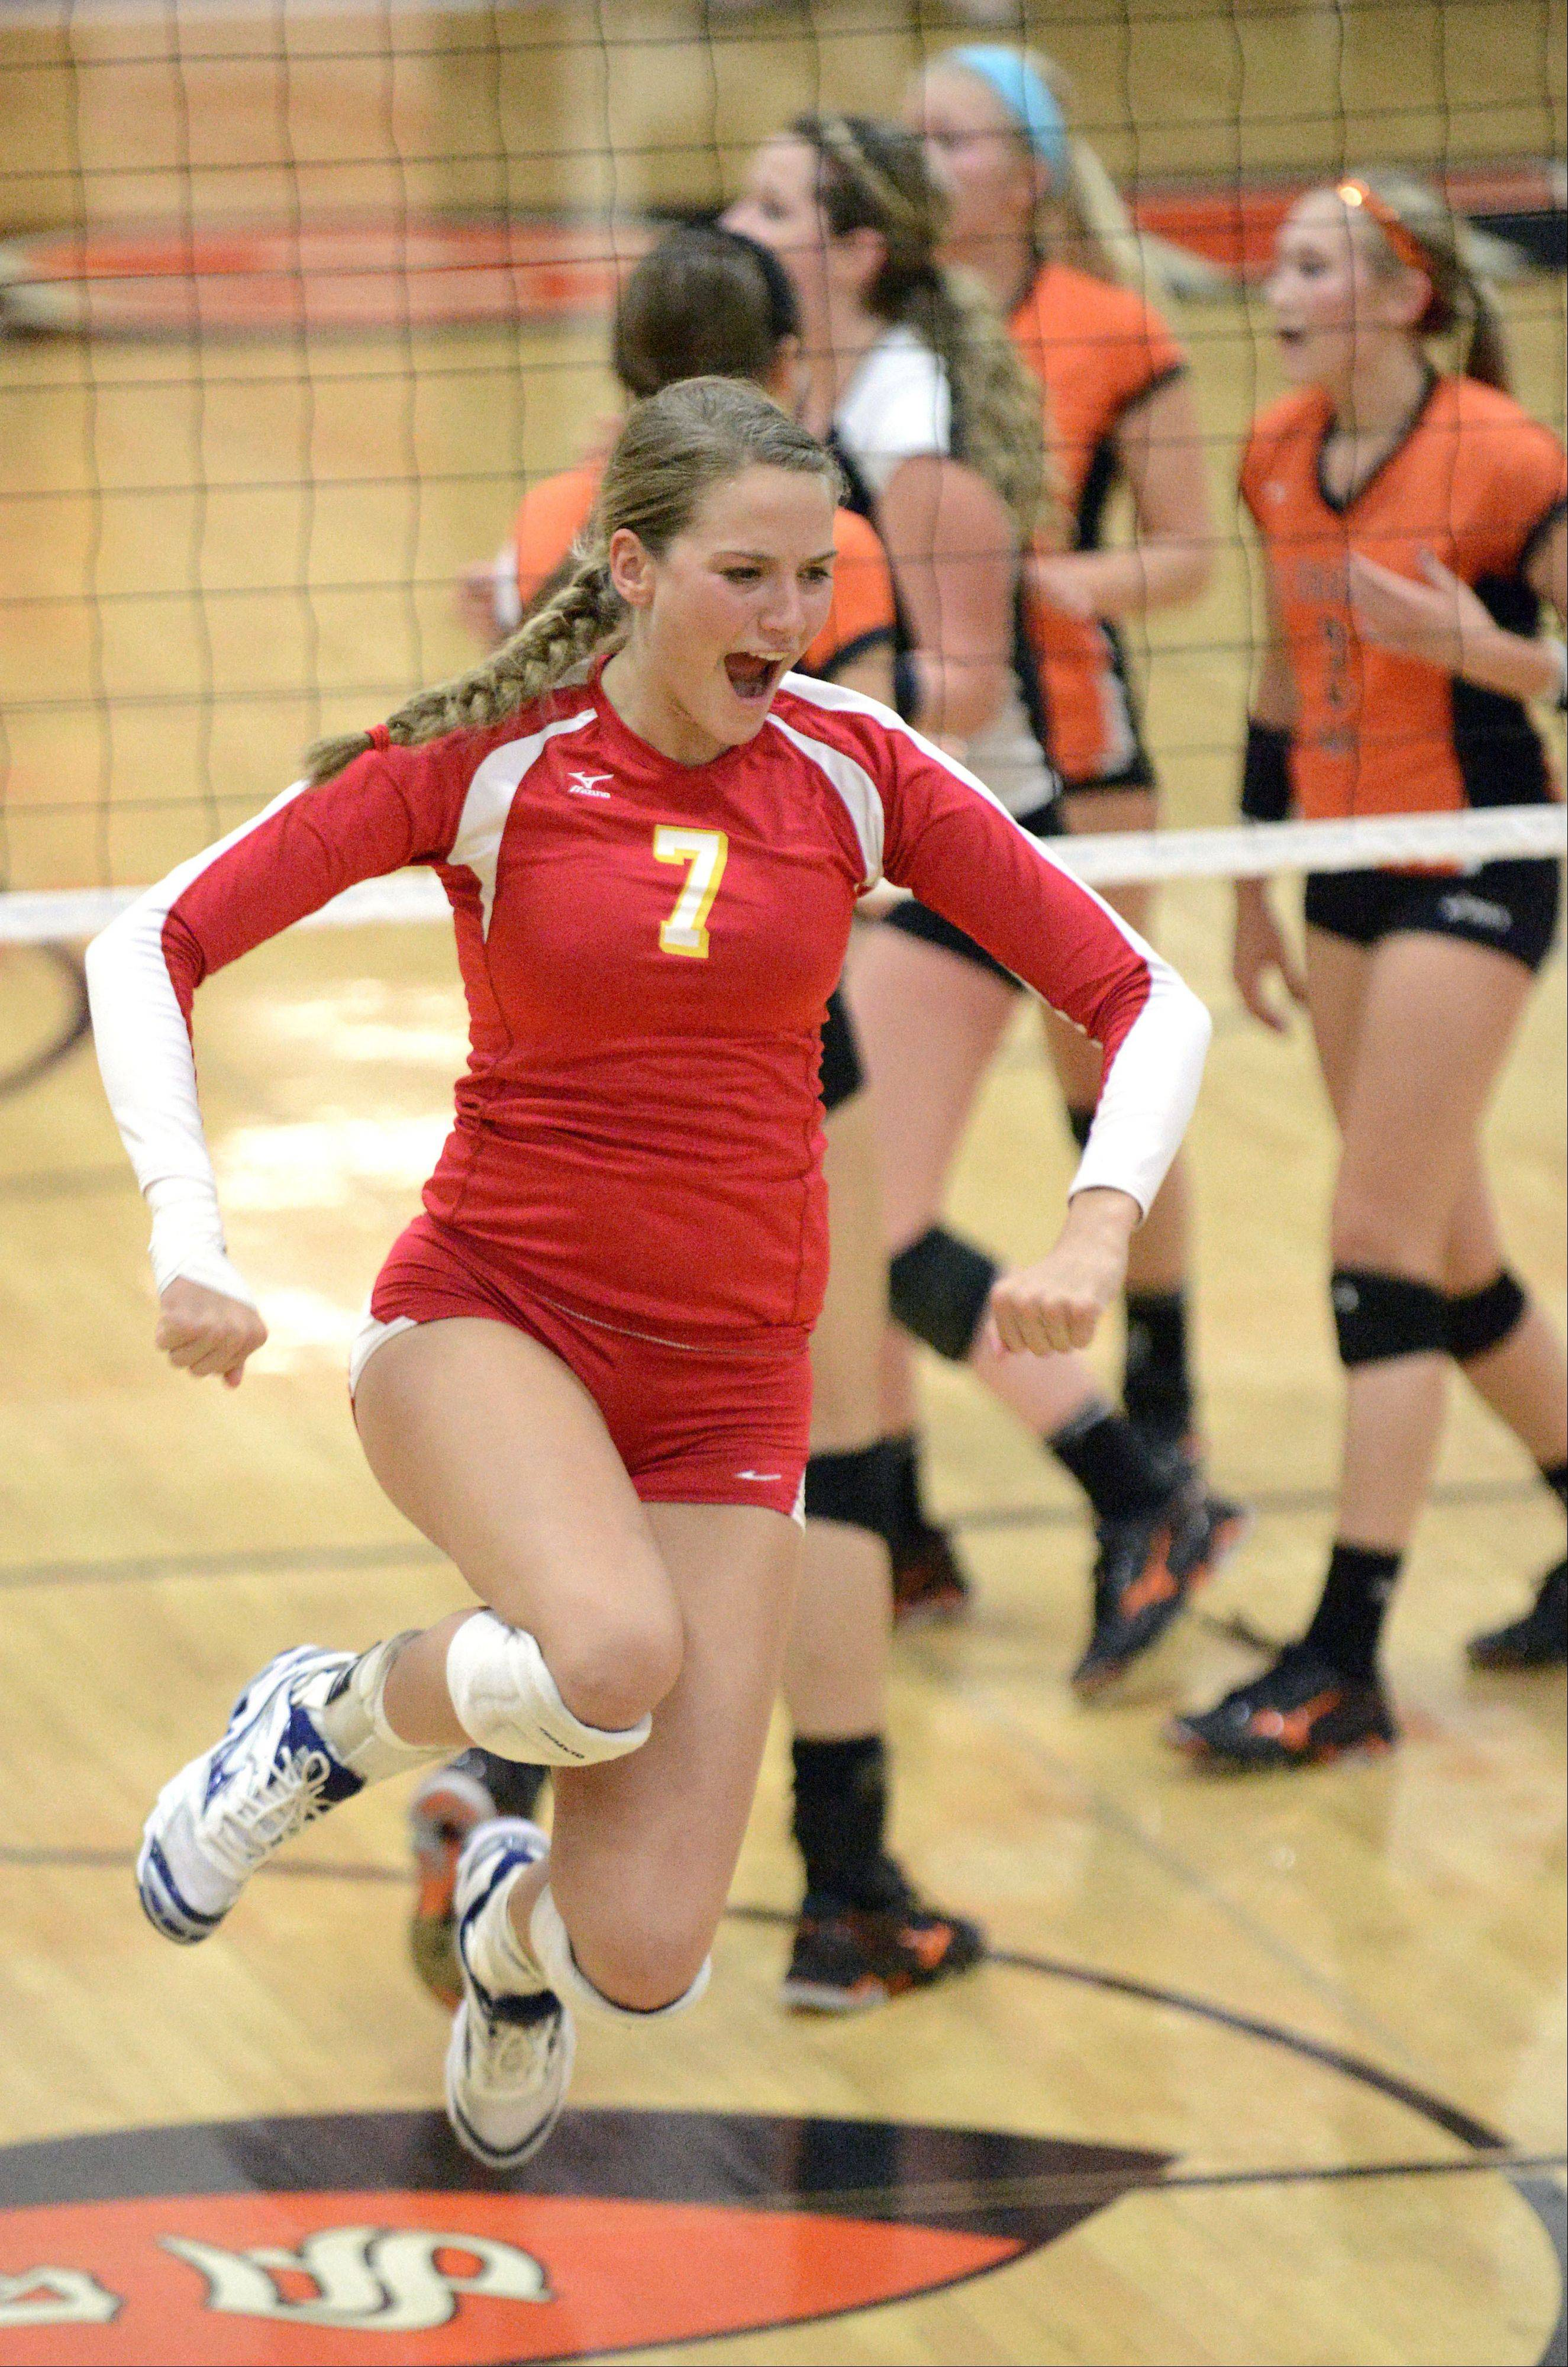 Batavia's Jancy Lundberg leaps for joy after the Bulldogs score a point over St. Charles East in the second match on Tuesday, October 14.